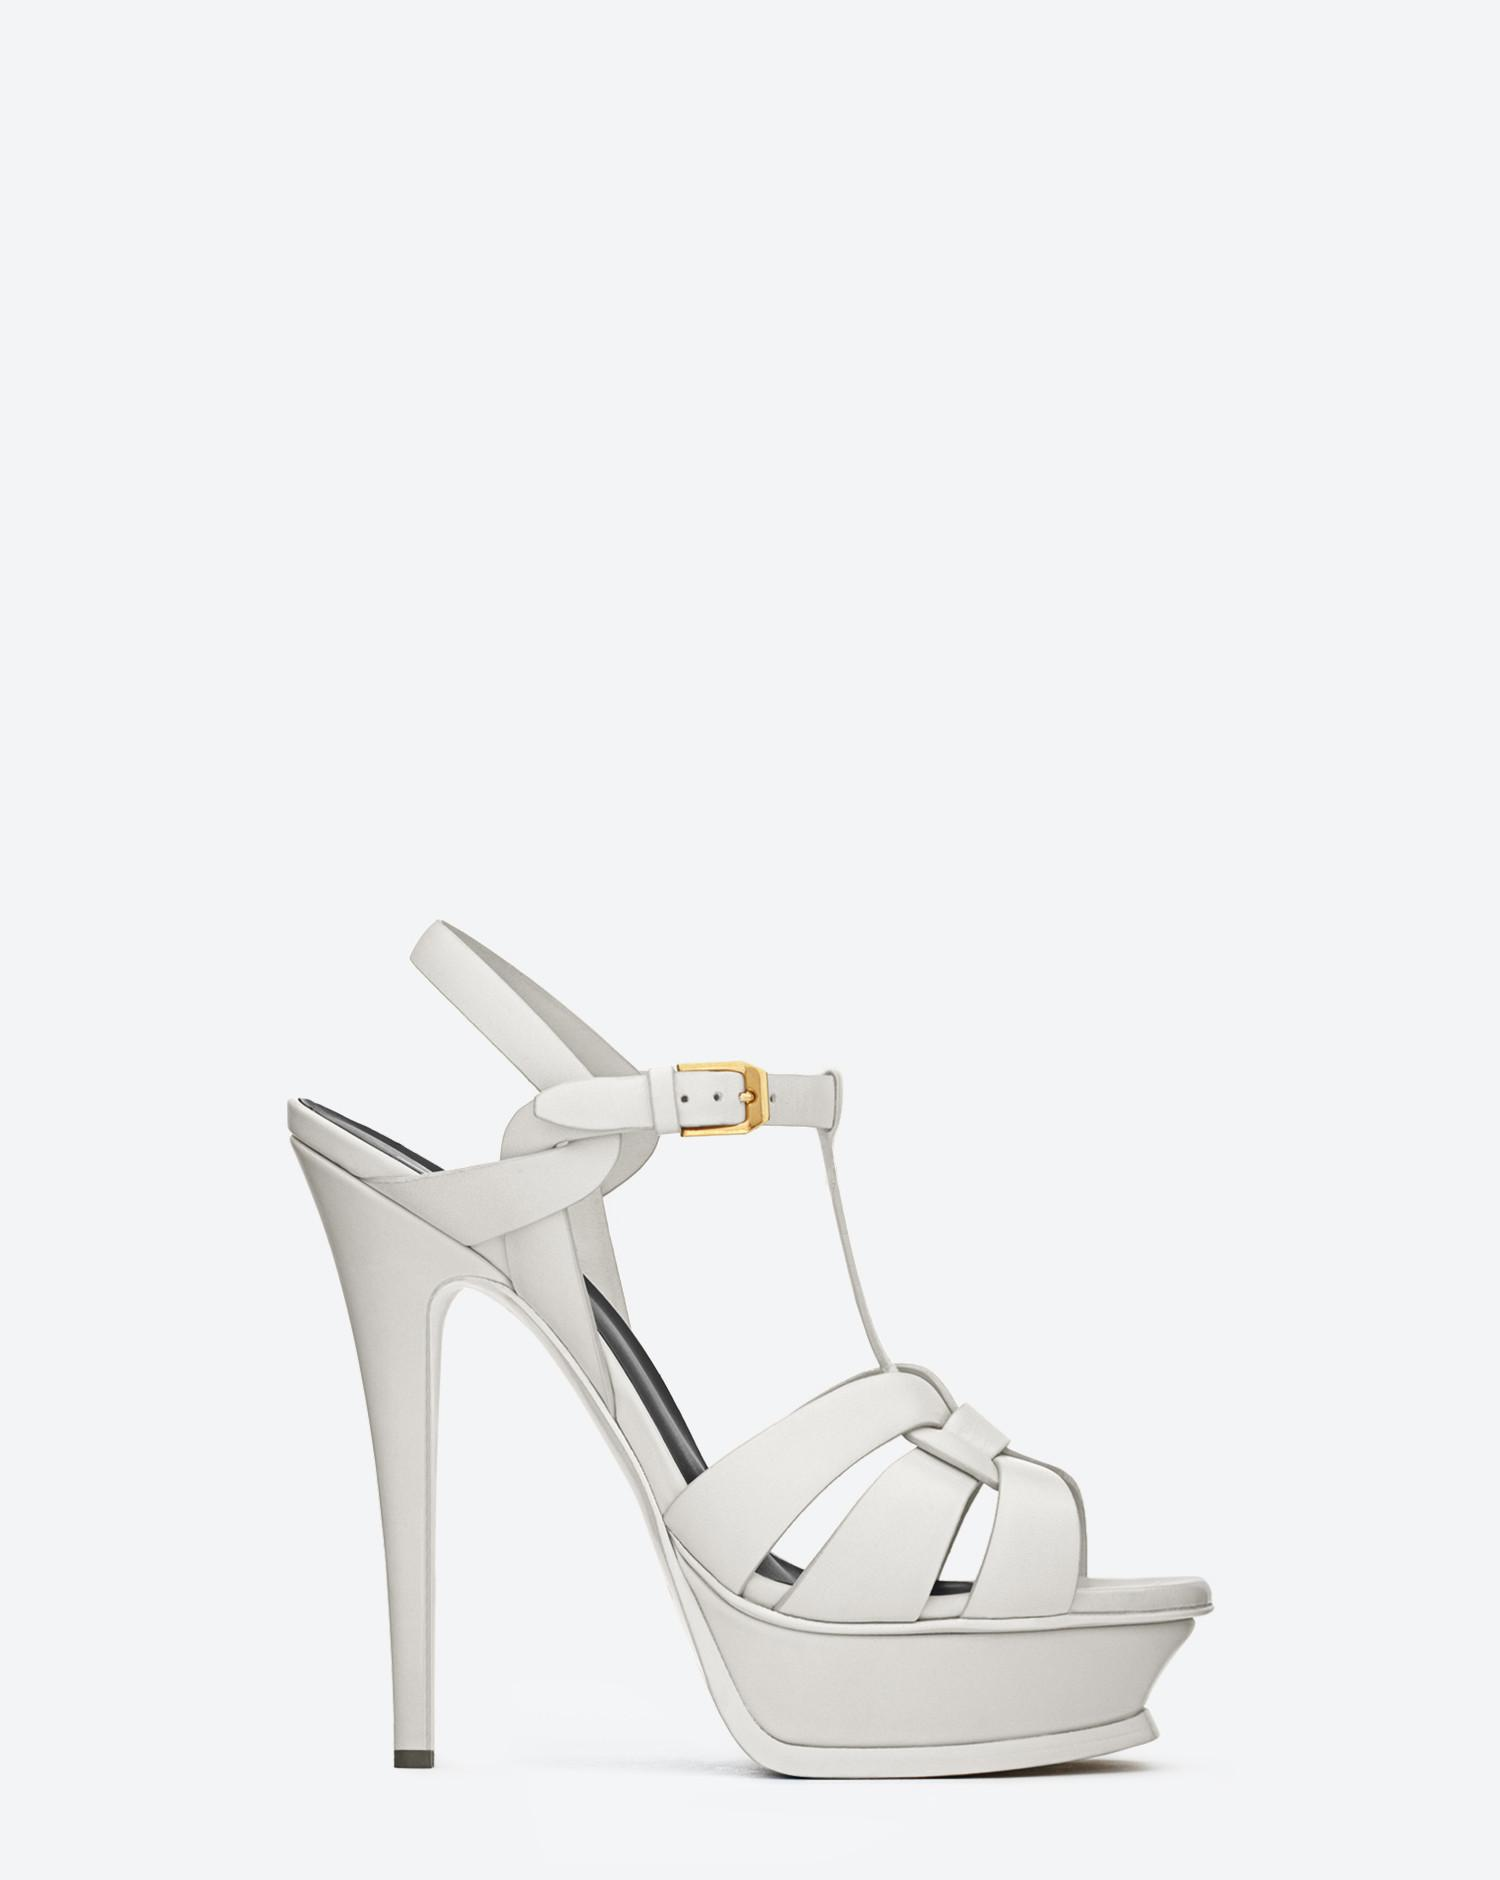 680d47e5121 Women's White Tribute Sandals In Smooth Leather